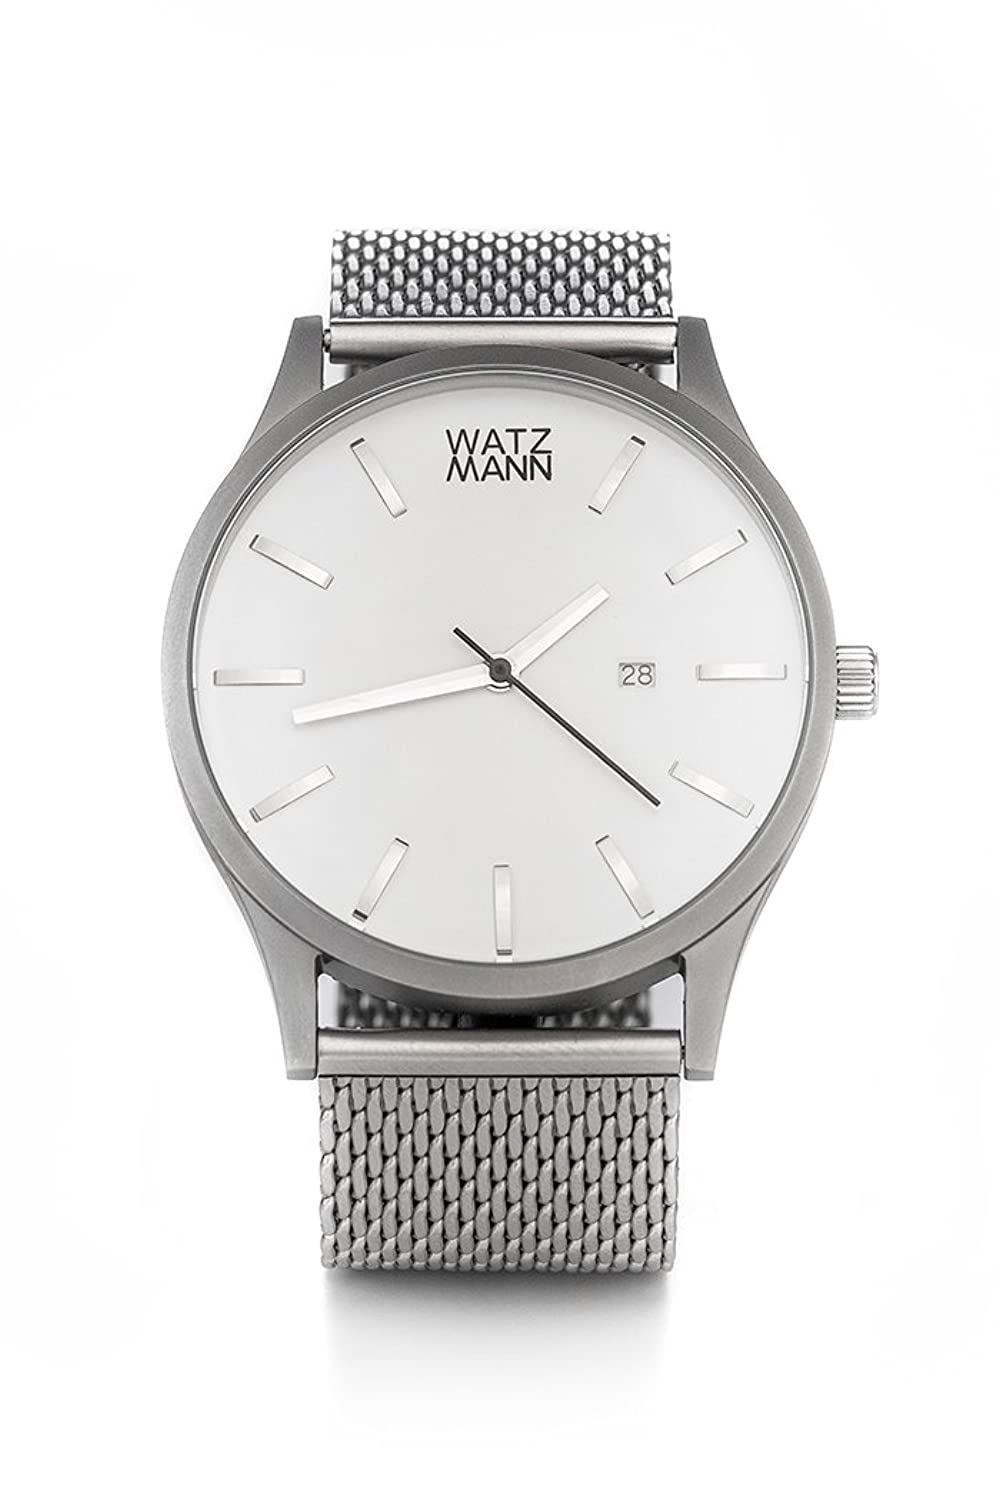 WATZMANN watch -- white mesh edition - minimalistische Herrenuhr